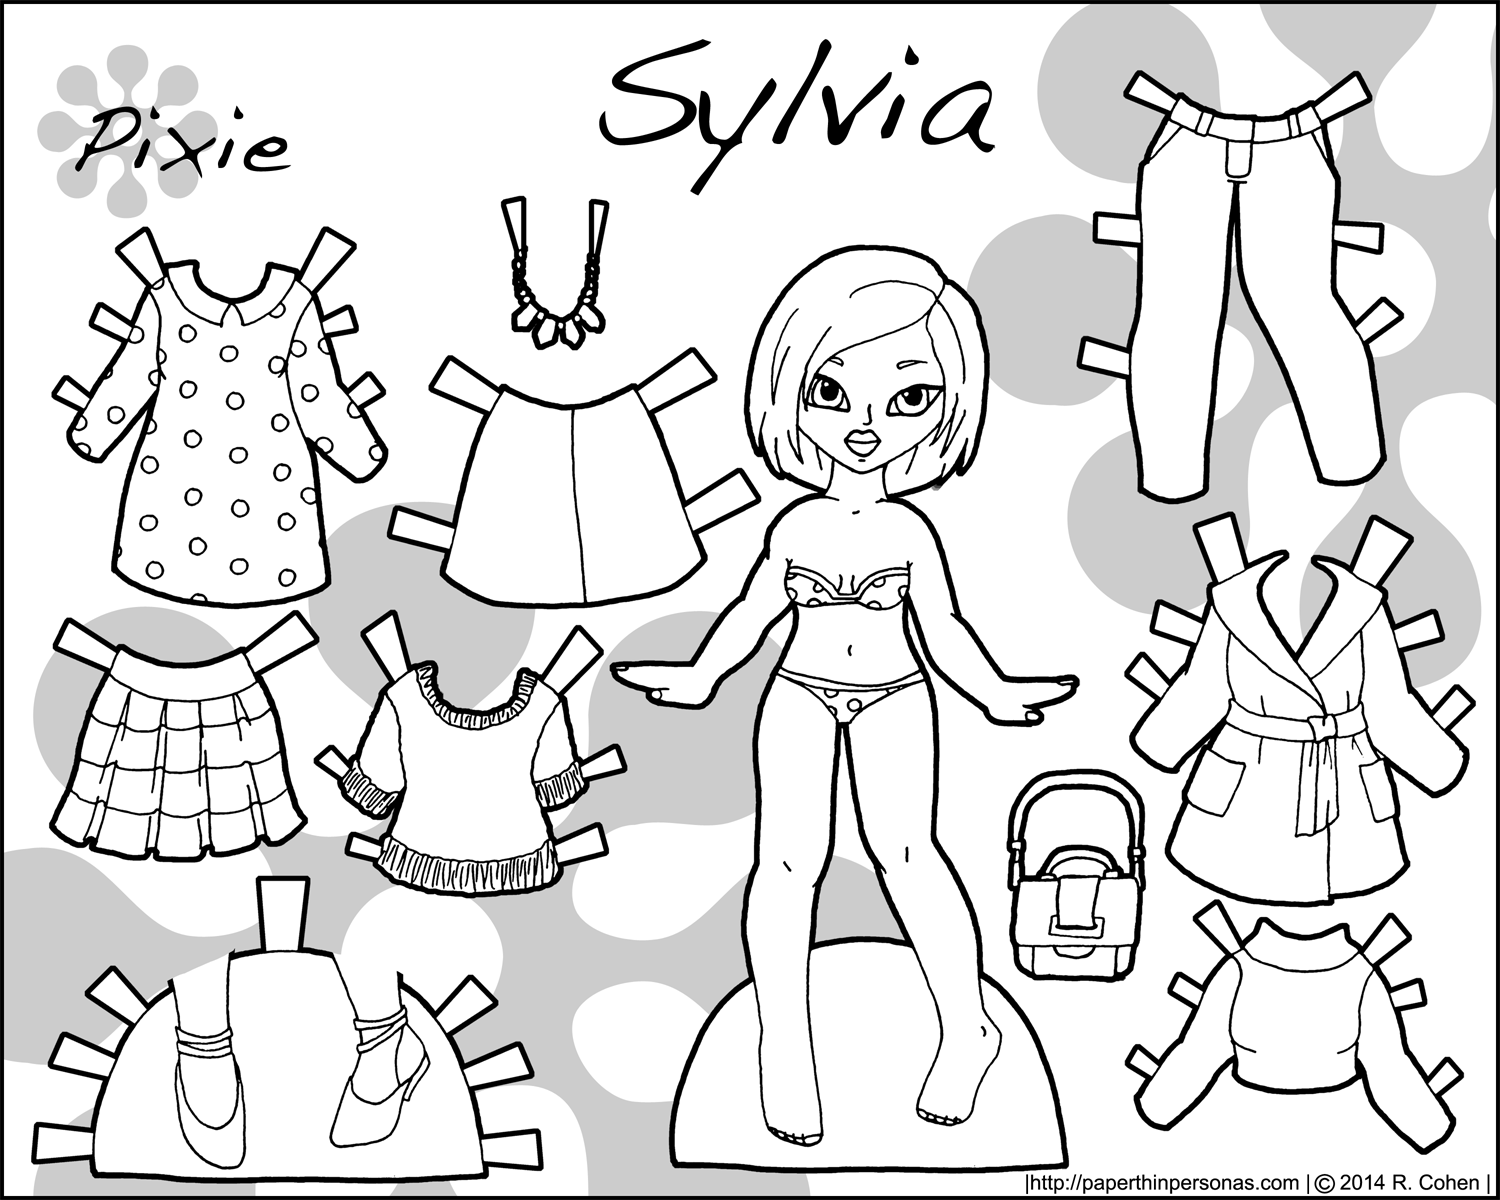 image regarding Paper Doll Clothes Printable named Sylvia: An Asian Printable Paper Doll with Modern day